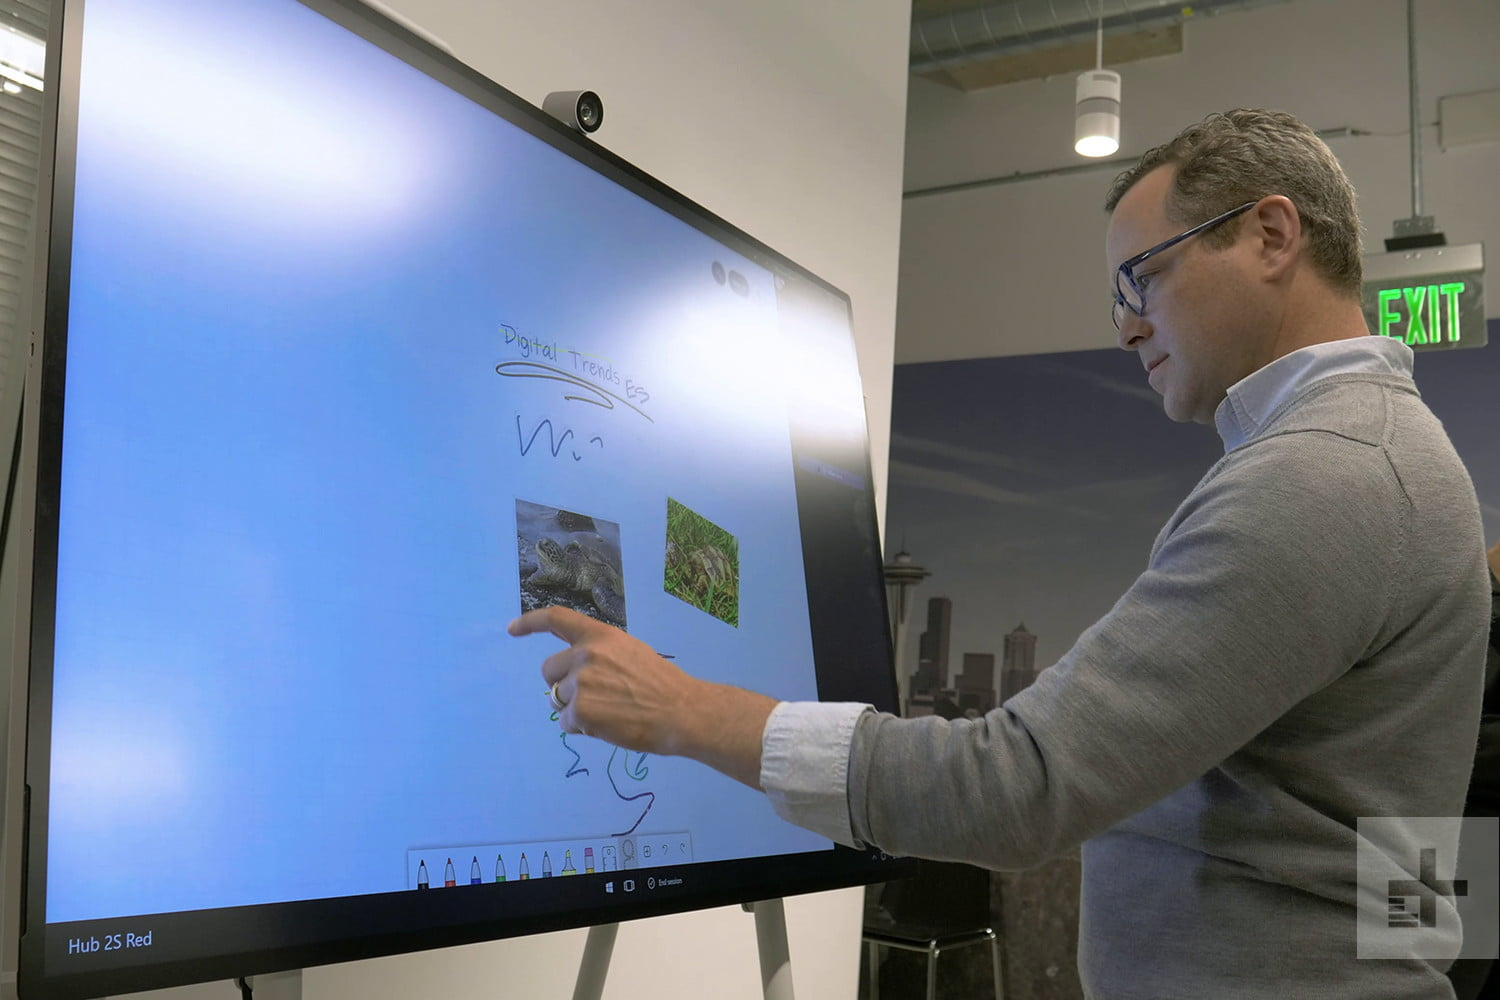 revision surfacehub 2s microsoft surface hub2 jeremyinteract 1